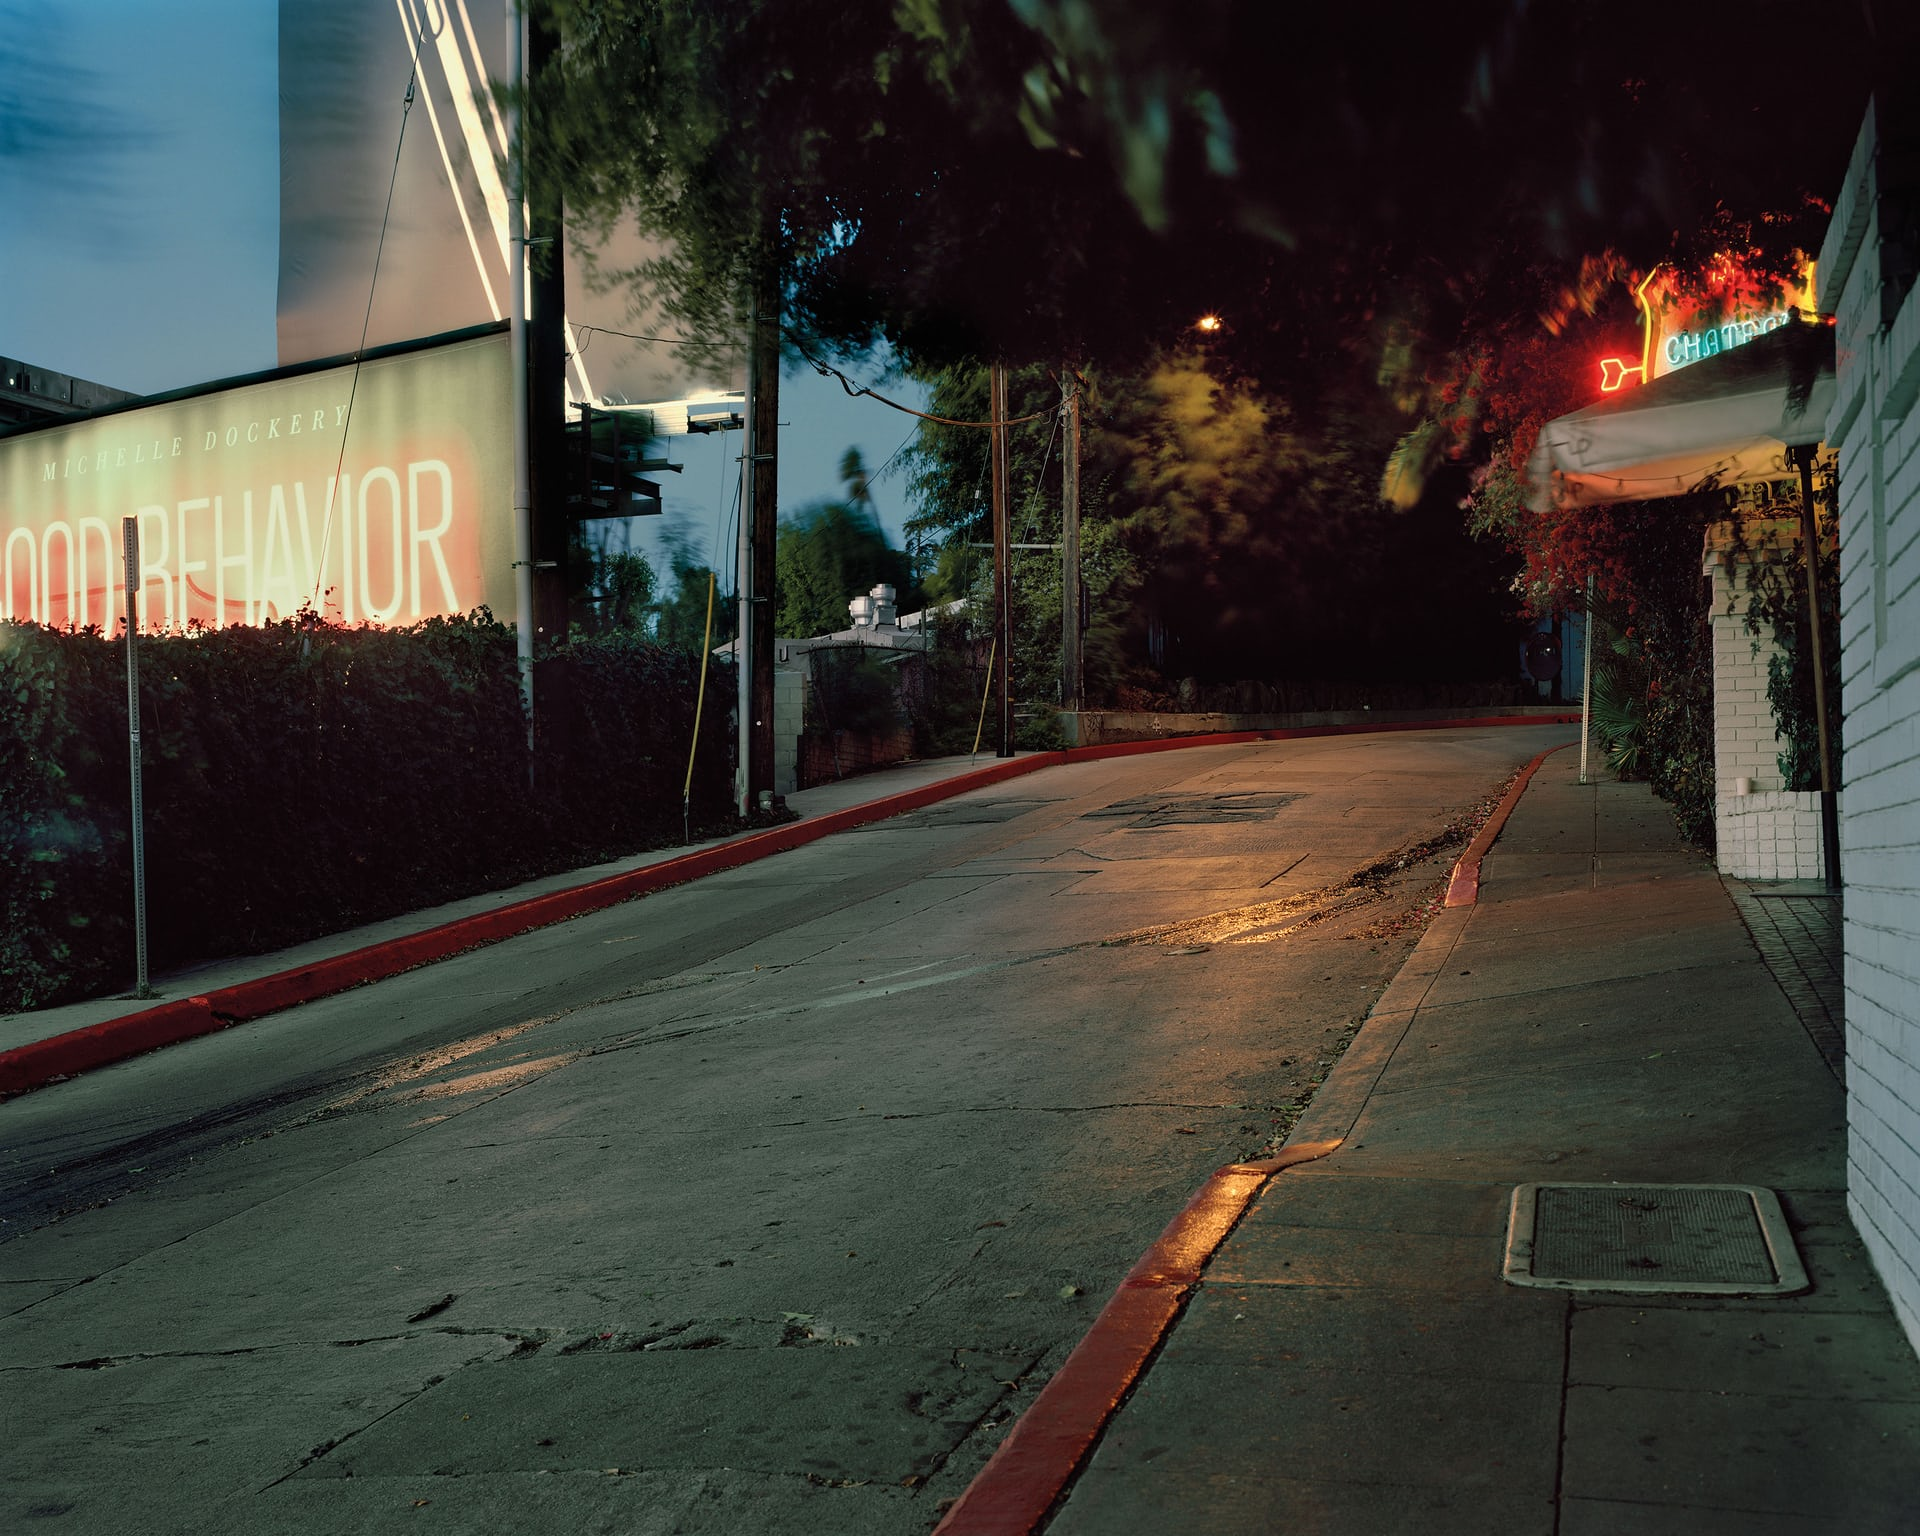 Helmut Newton, Marmont Lane, Los Angeles, 23 January 2004 The famous photographer's silver Cadillac SRX leaves the Chateau Marmont hotel at 11.40pm. His car first knocks over an Associated Press photographer, who is walking past, then crashes into a wall in front of the hotel. Newton dies a few hours later